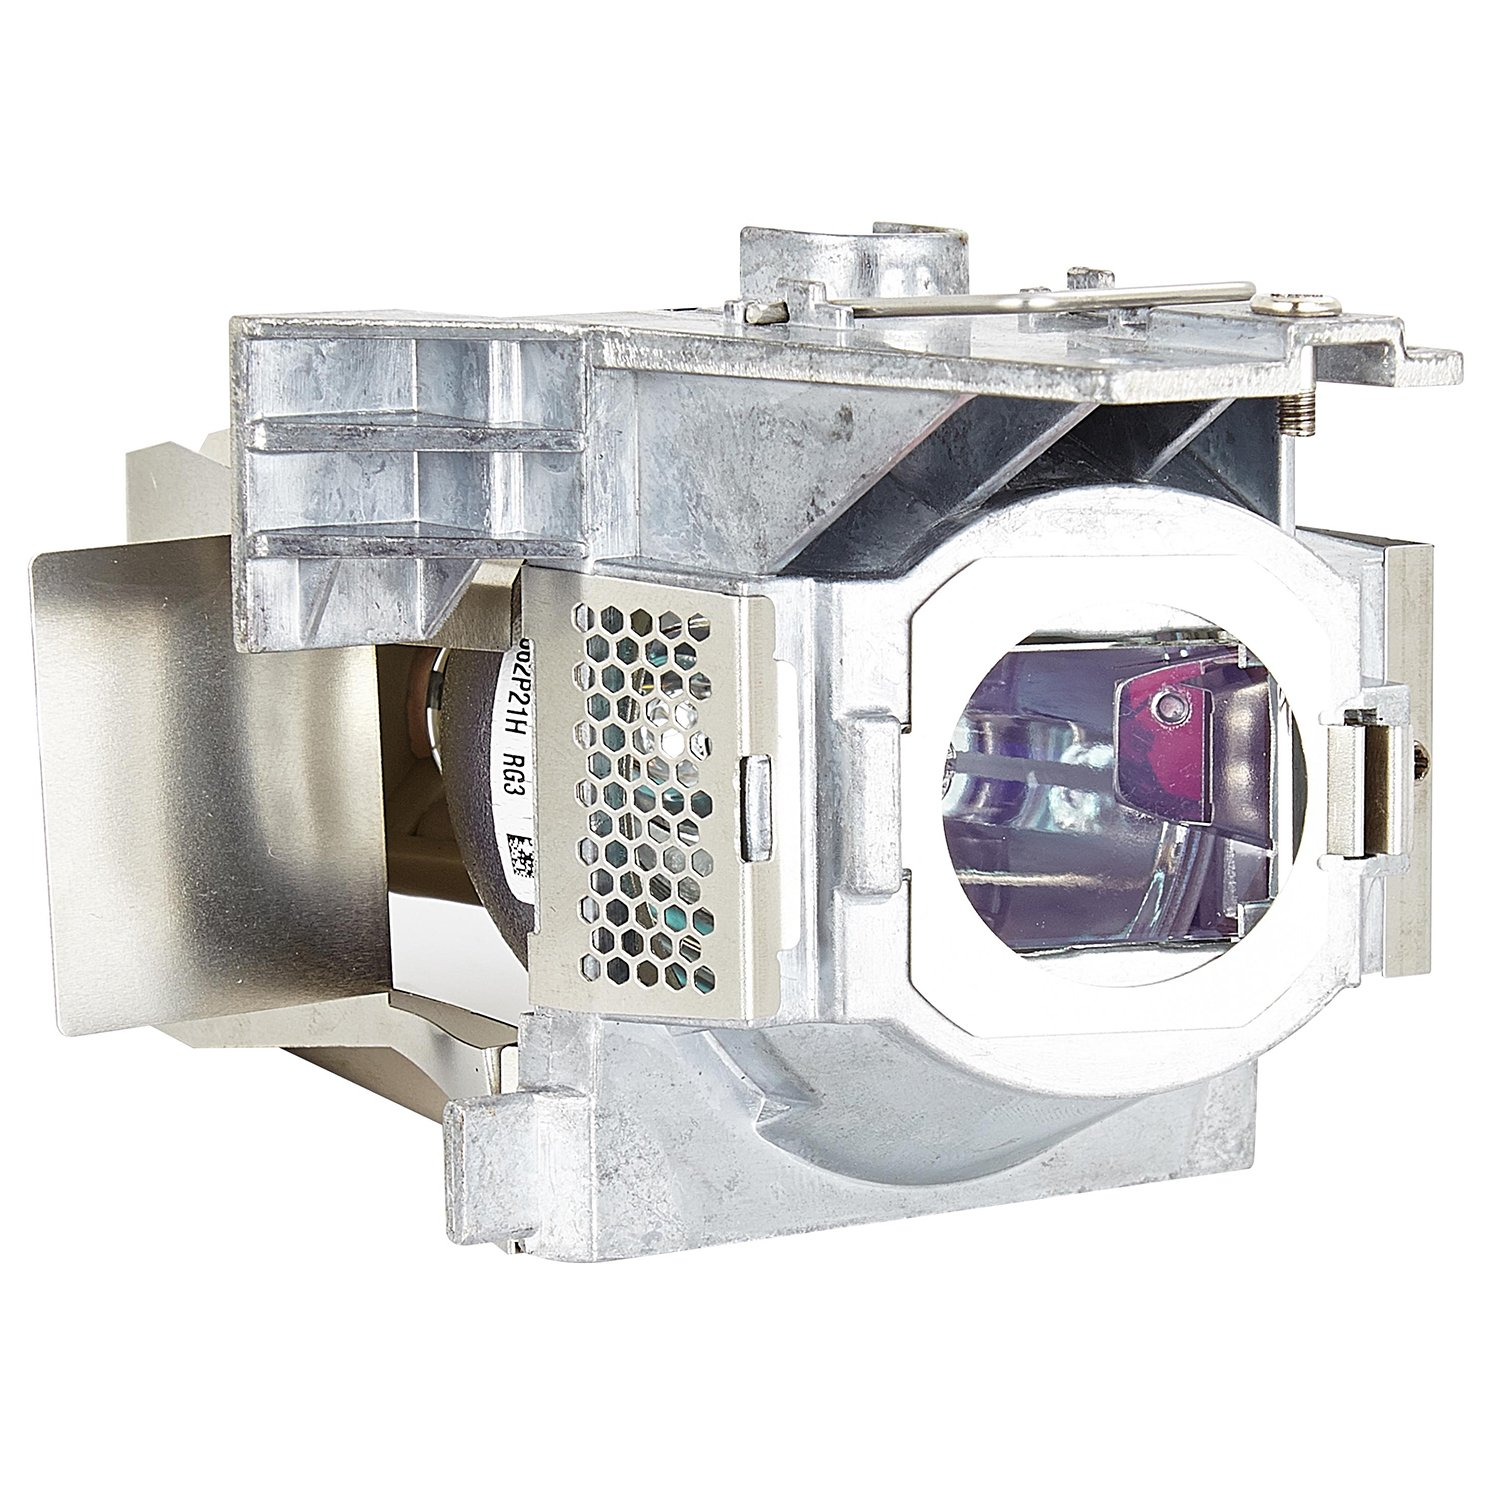 RLC-093 Viewsonic Projector Lamp Replacement. Projector Lamp Assembly with High Quality Genuine...